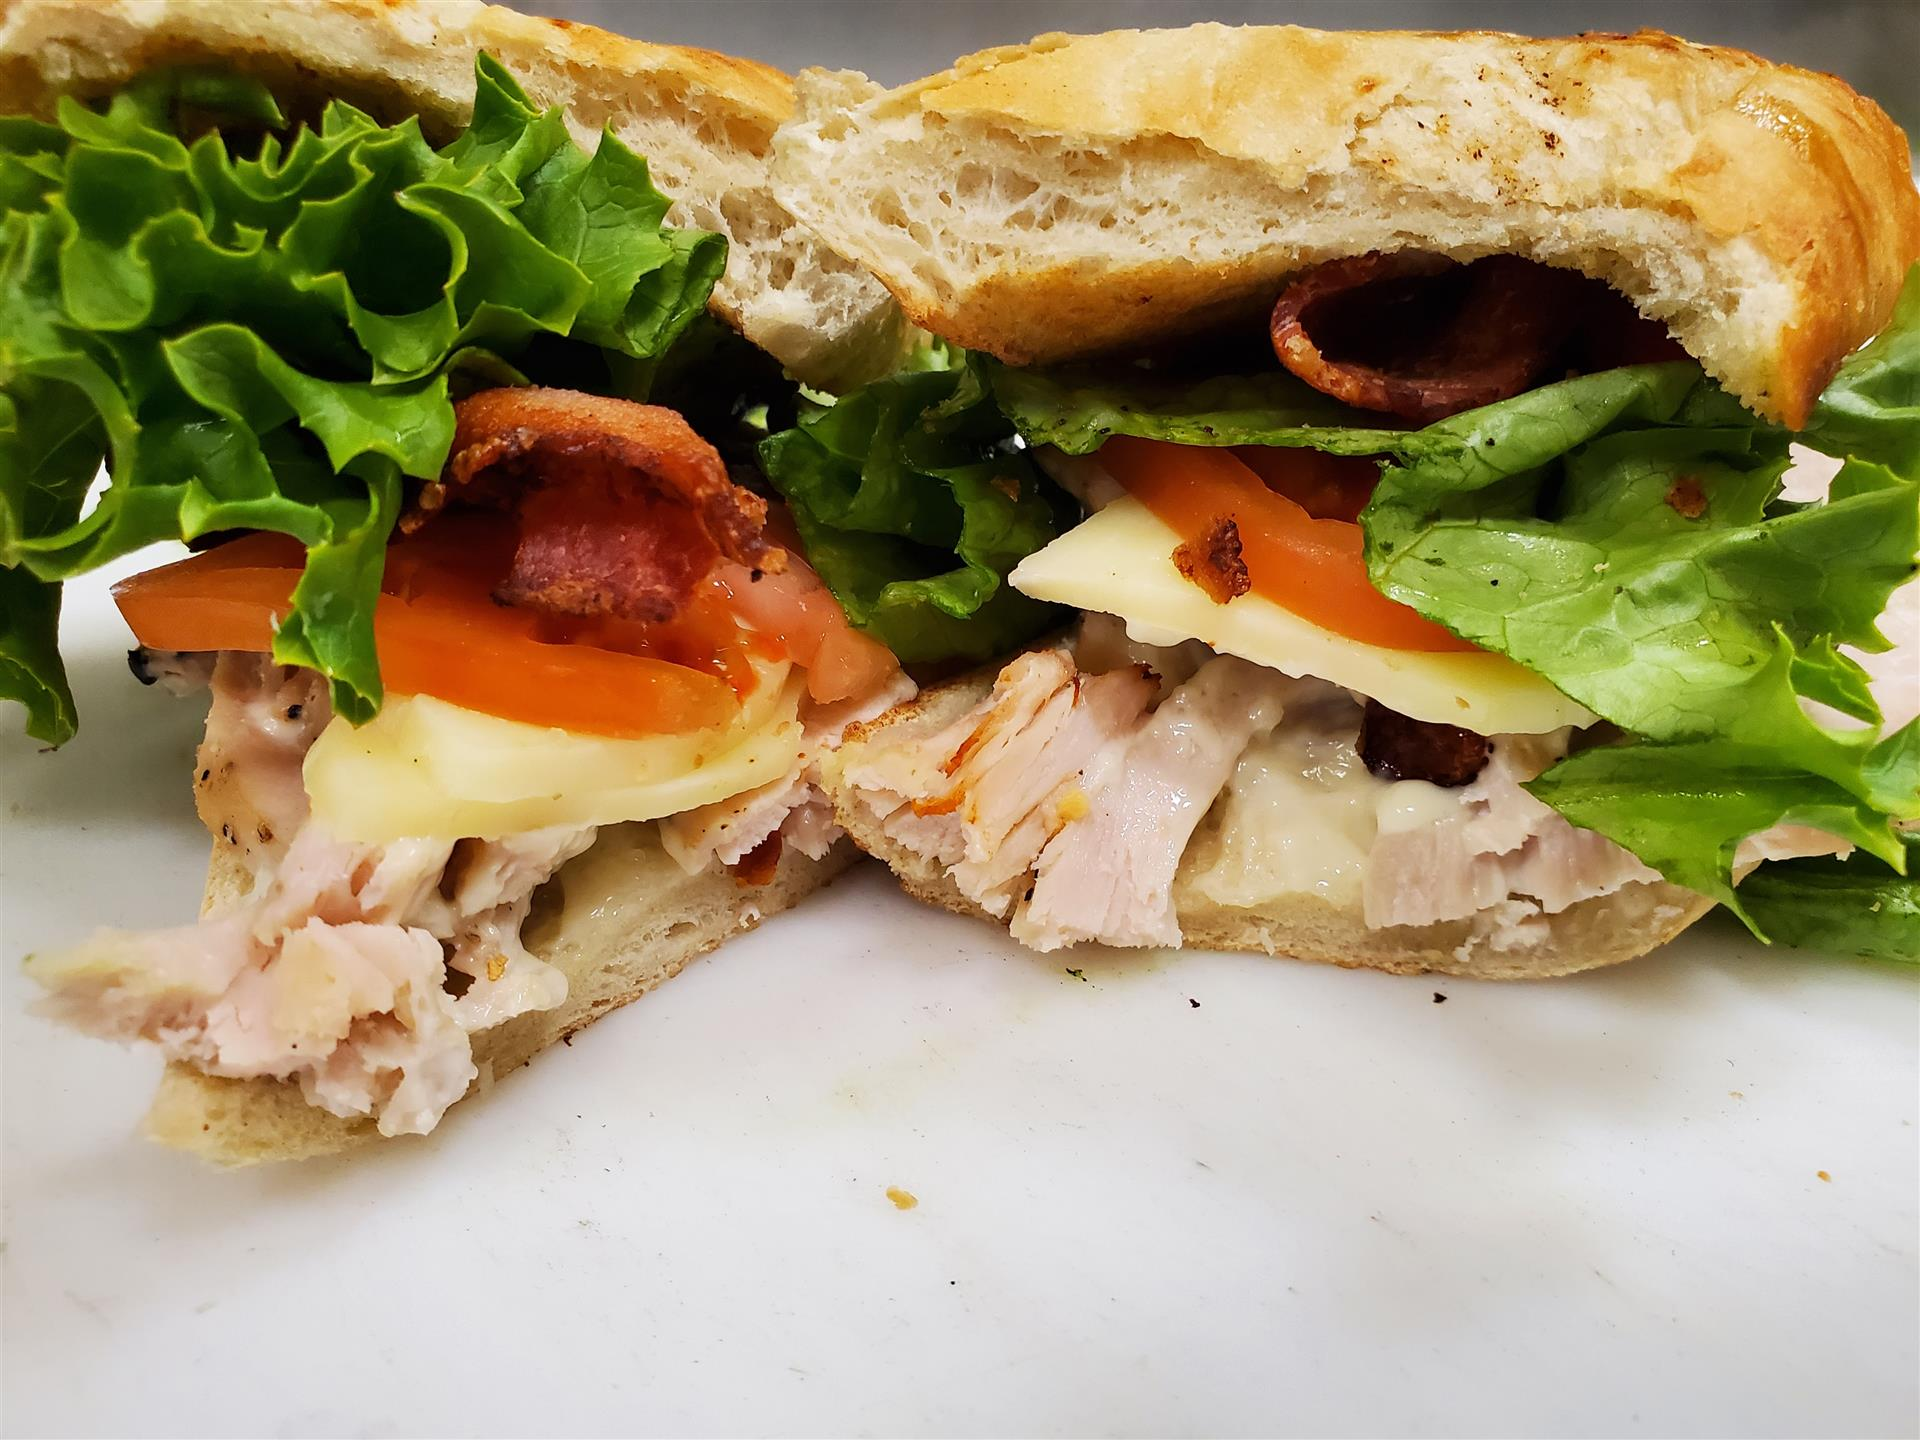 turkey club sandwich with bacon, cheese, lettuce and tomato